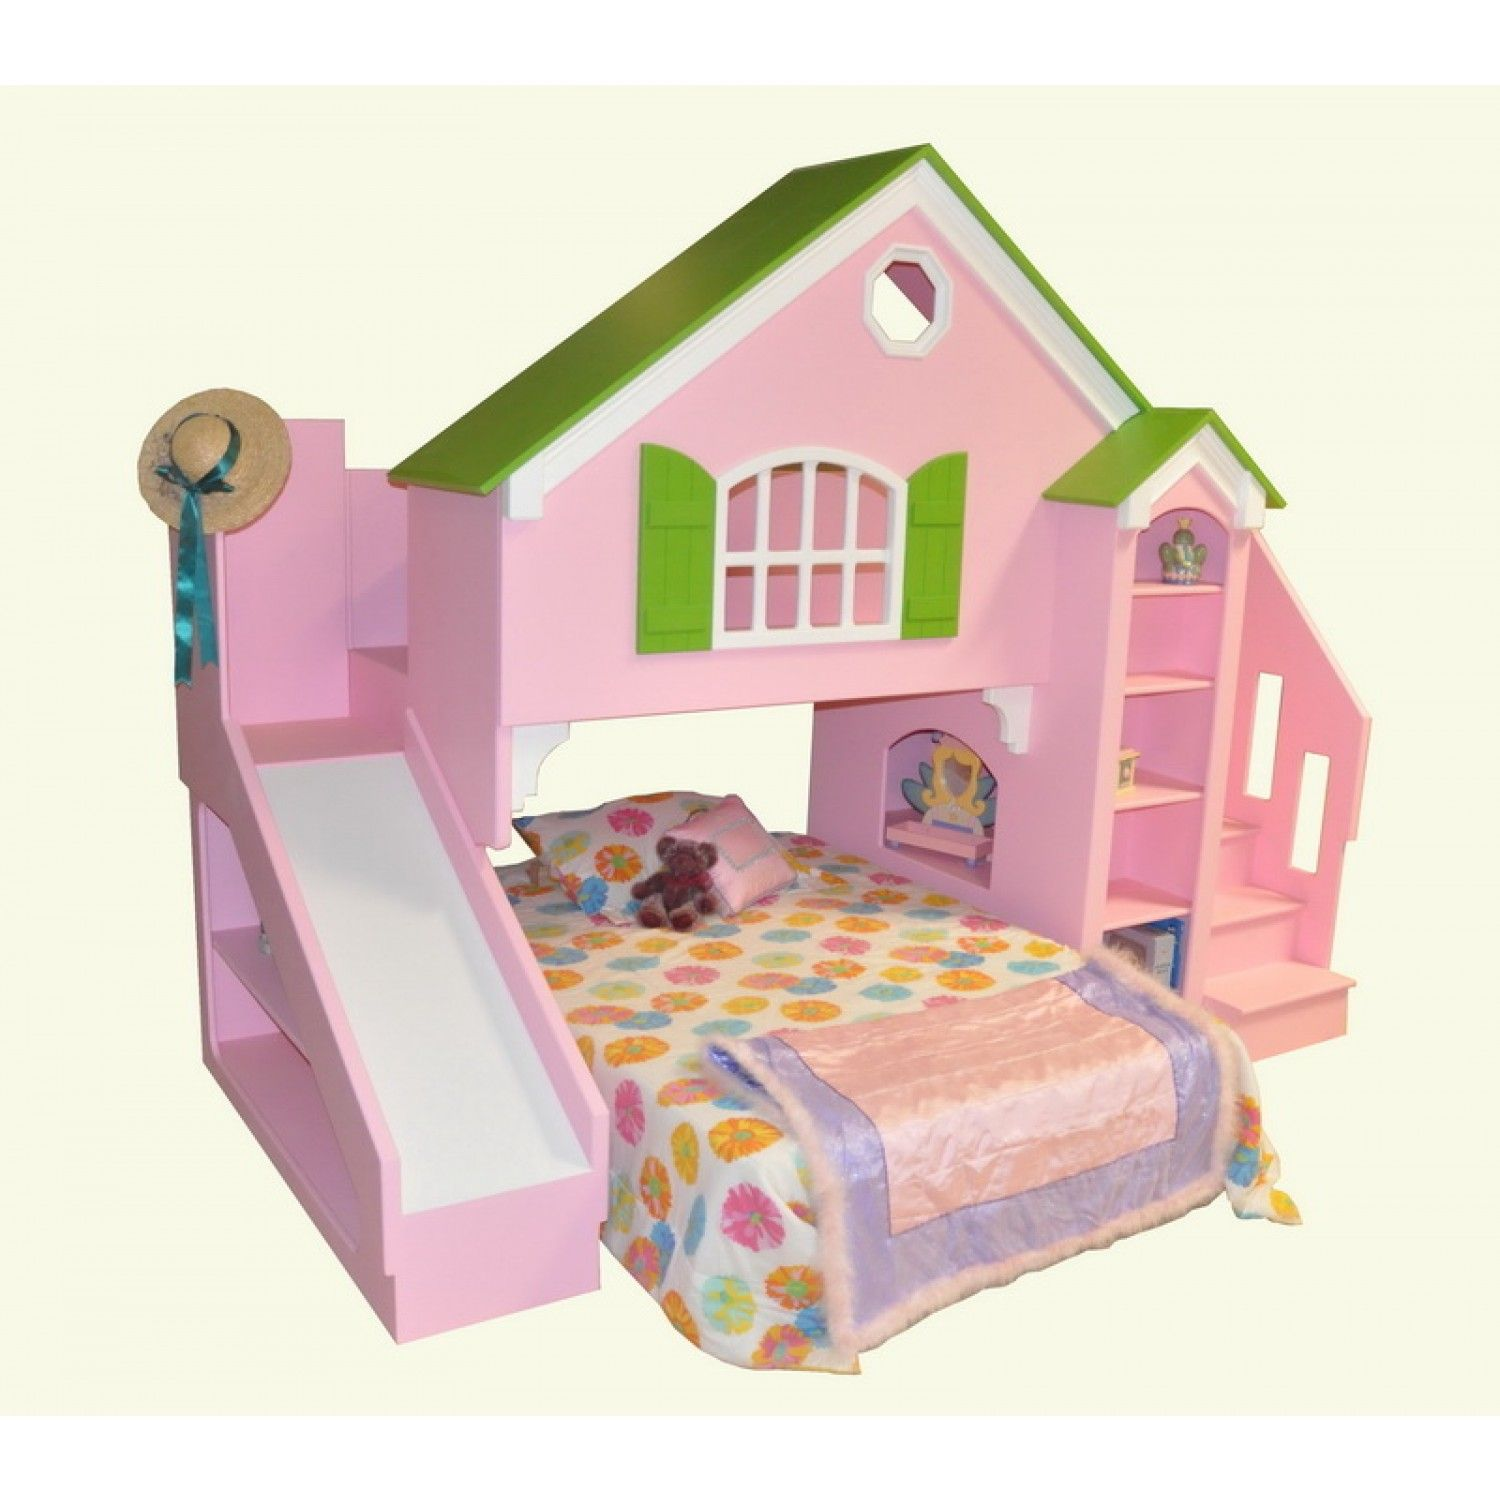 Kids loft bed with slide plans - Tanglewood Design Dollhouse Bed Plans With Optional Slide And Staircase Plans